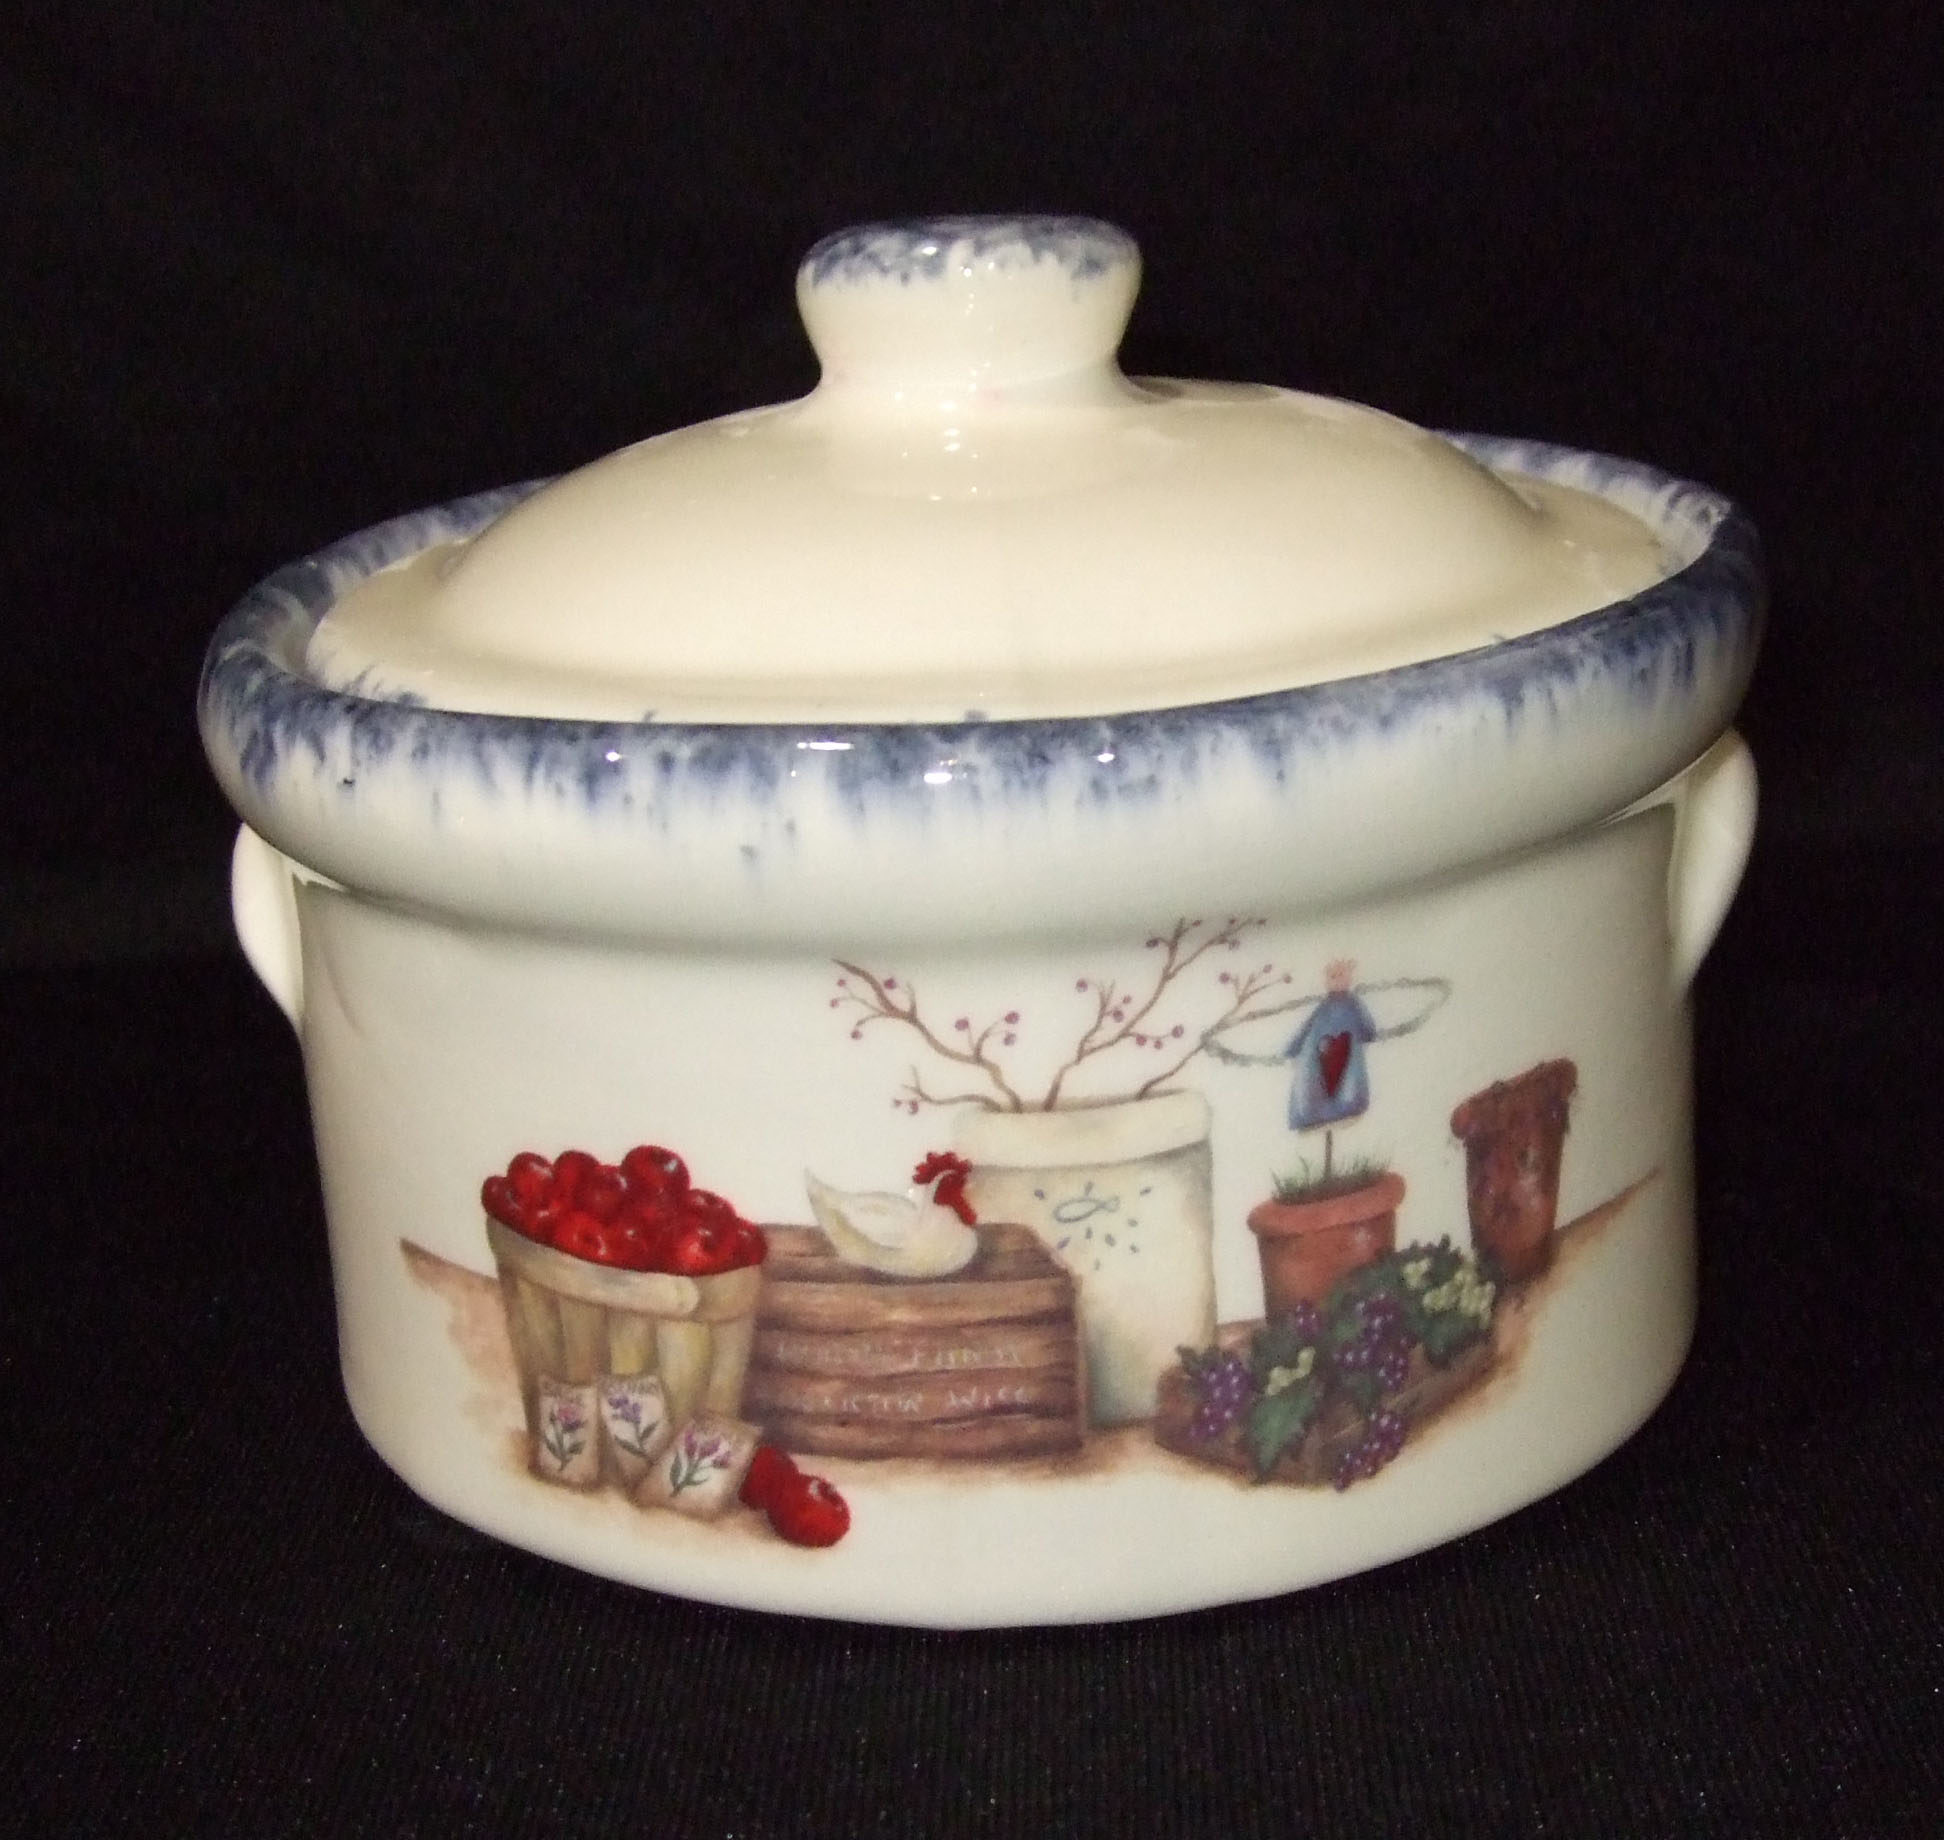 crock, crockery, cheese crock, sugar dish, pottery, ceramics, custom